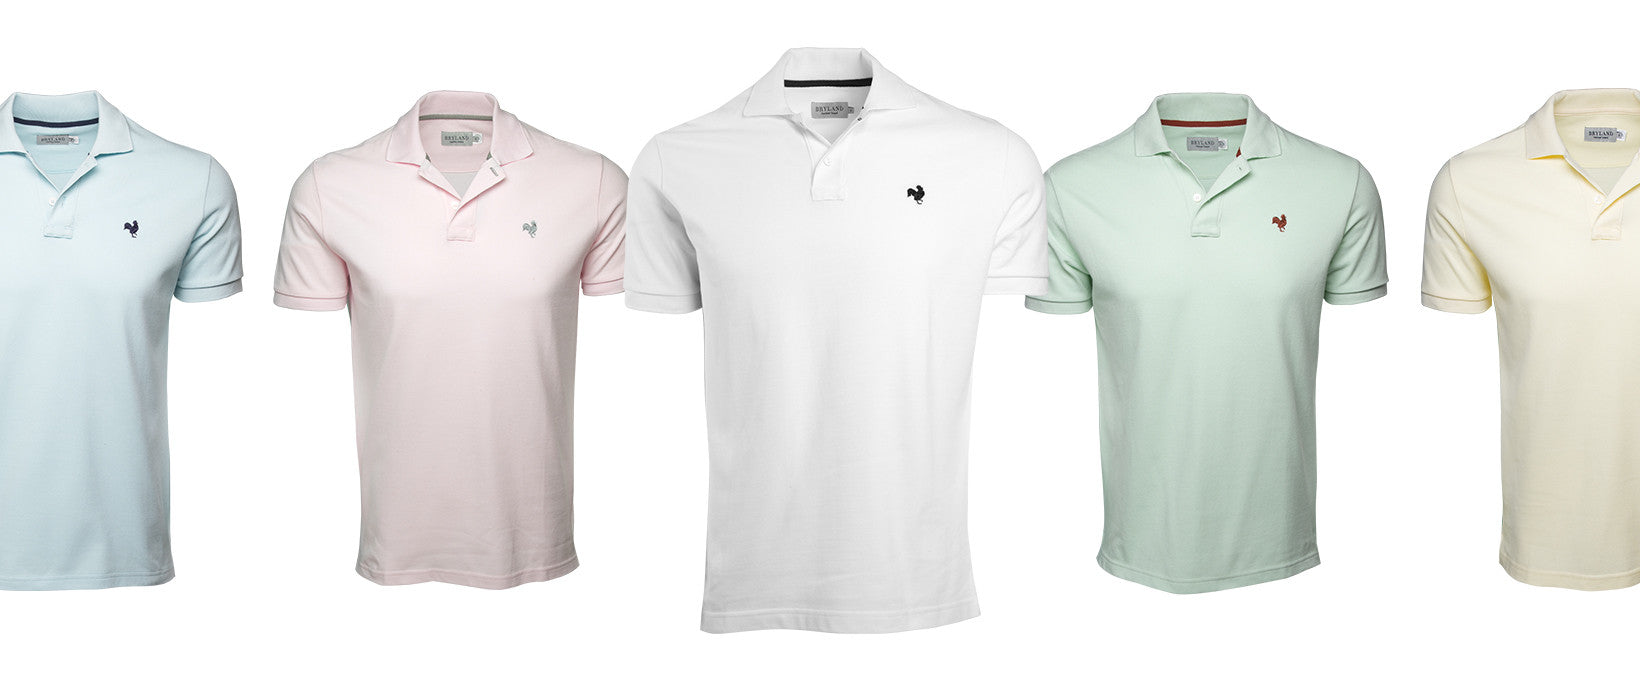 Spring brings new colors to our Polo Shirts